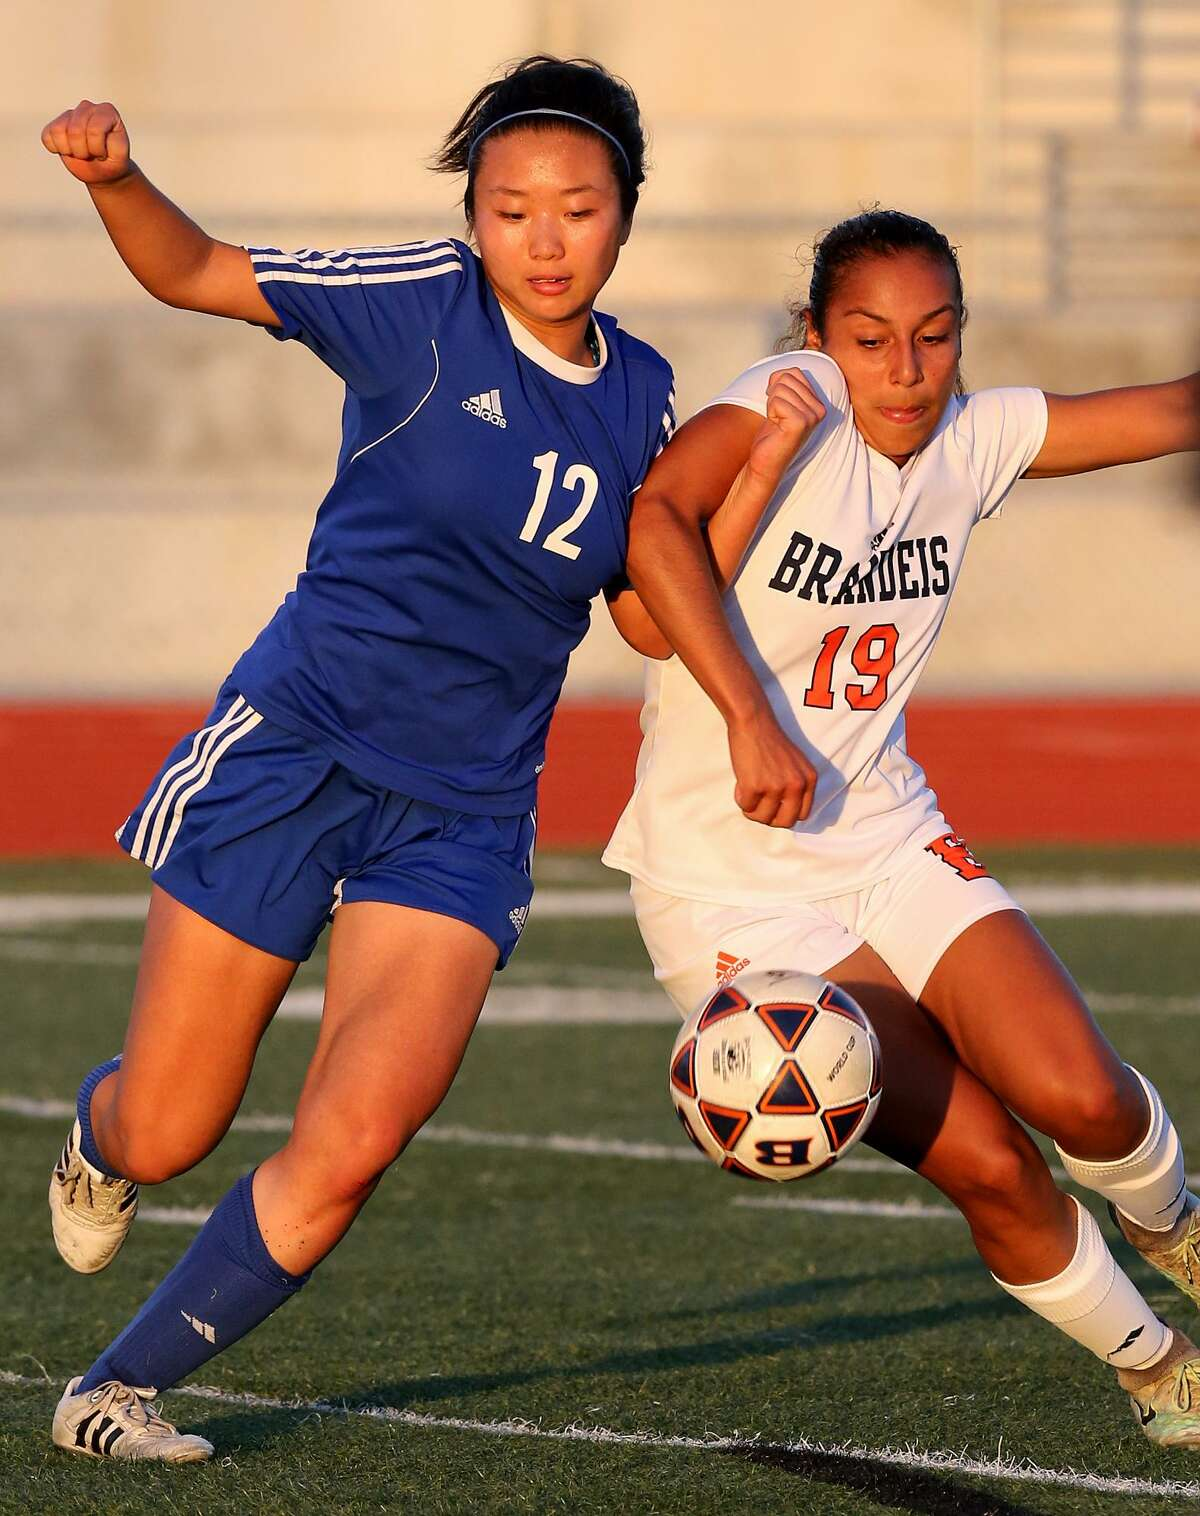 Austin Westlake's Victoria Lee and Brandeis' Marissa Arias chase after the ball during their Class 6A second-round playoff game held Friday March 31, 2017 at Steele High School. Westlake won 2-1.